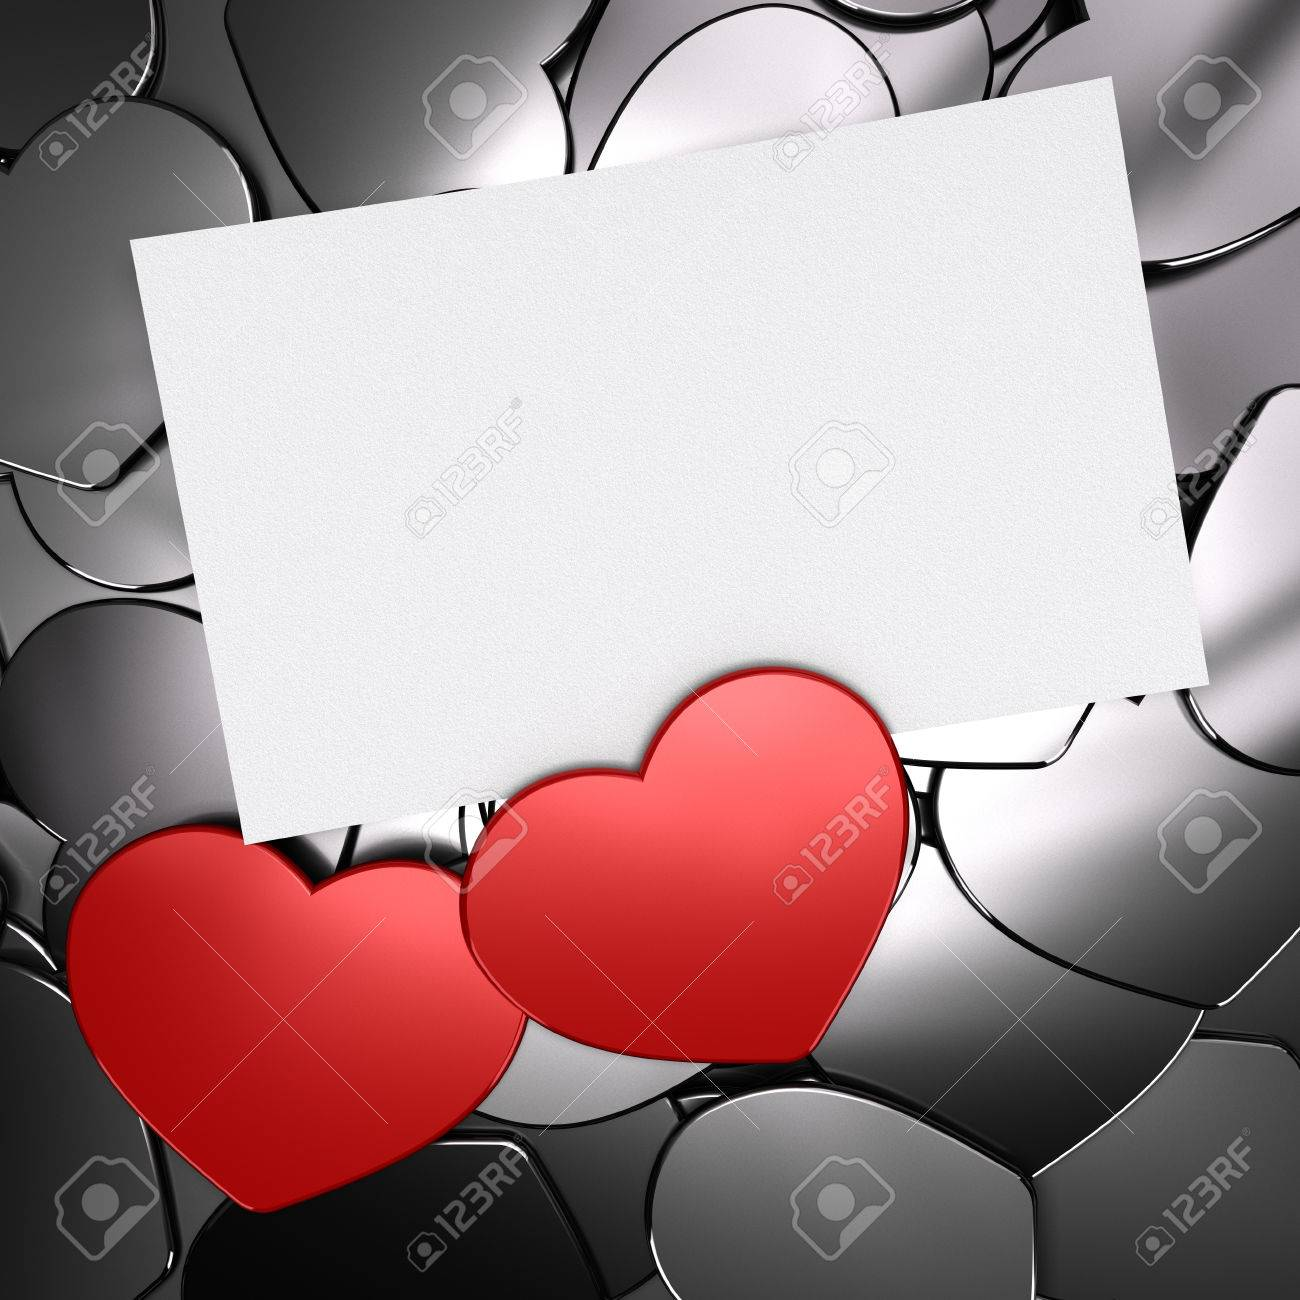 Two red heart shapes over grey ones symbol of love passion two red heart shapes over grey ones symbol of love passion card with blank biocorpaavc